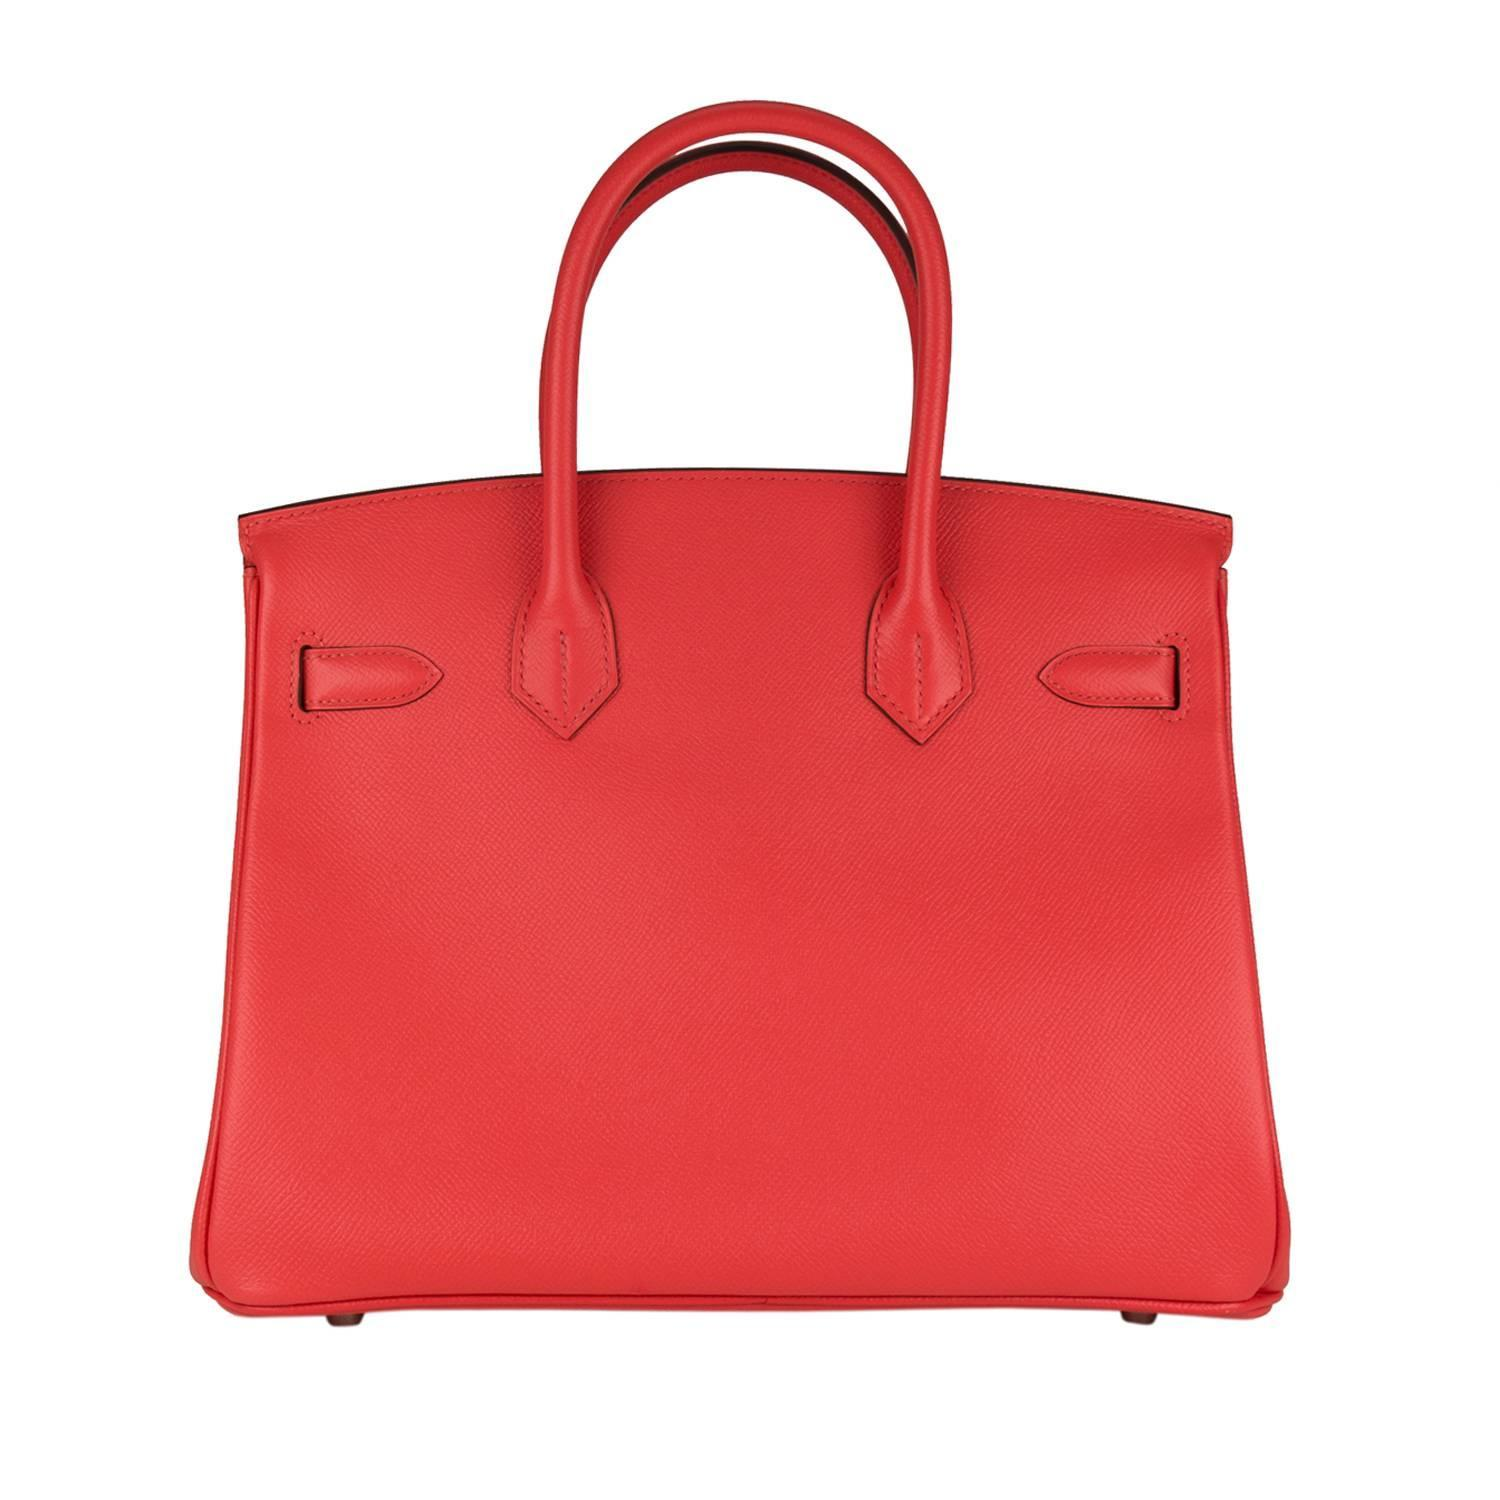 hermes handbags discount - Private Selection Top Handle Bags - Miami, FL 33133 - 1stdibs - Page 2